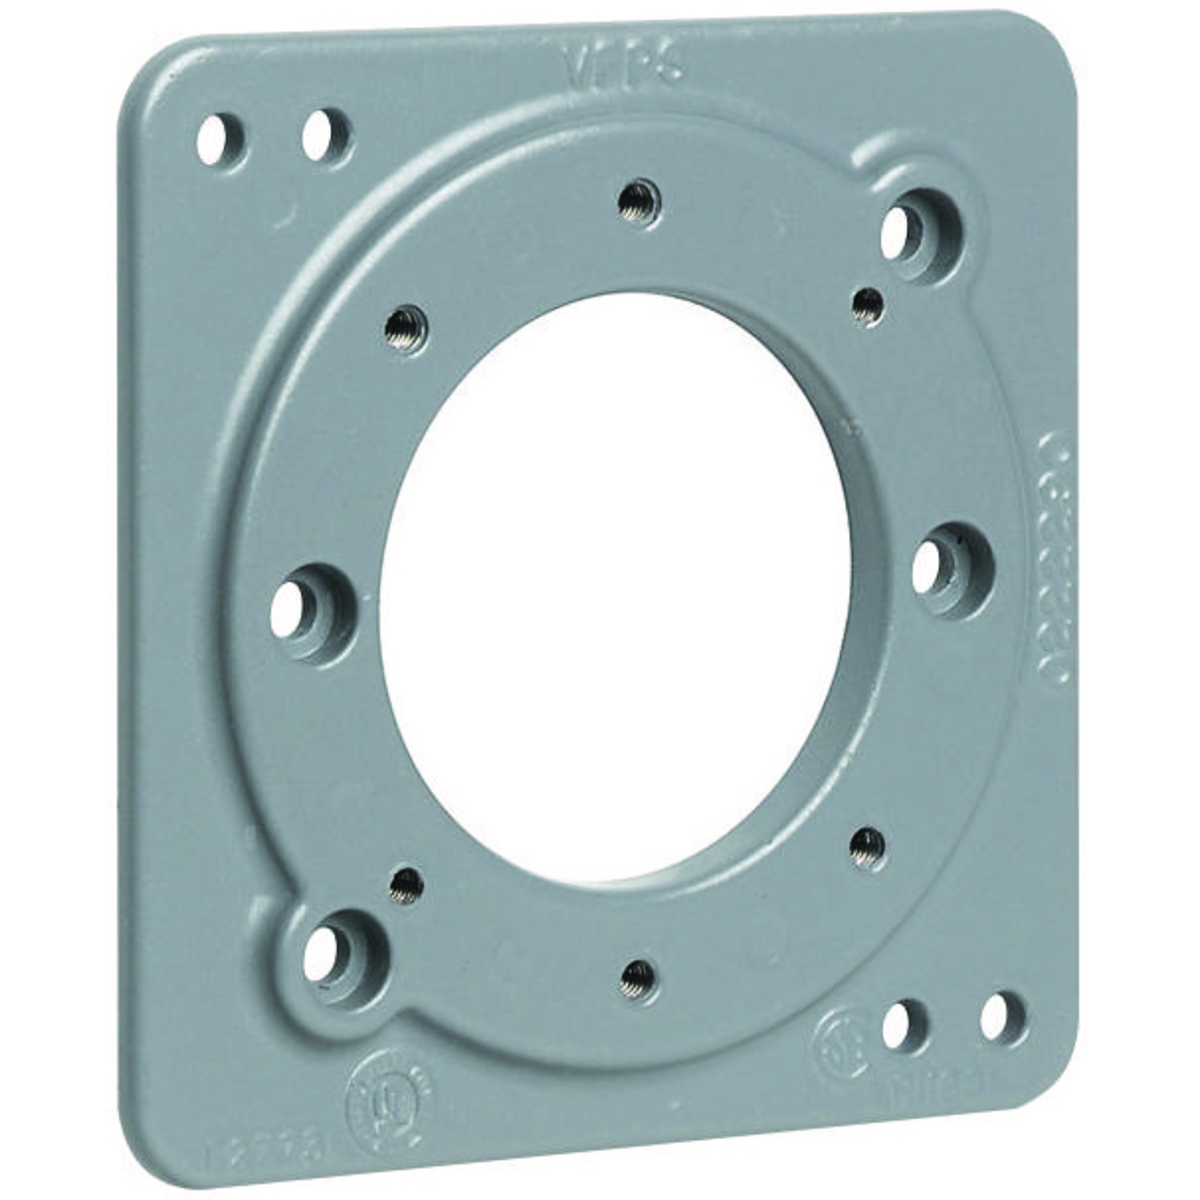 Hubbell VFPS Adapter Mounting Plate